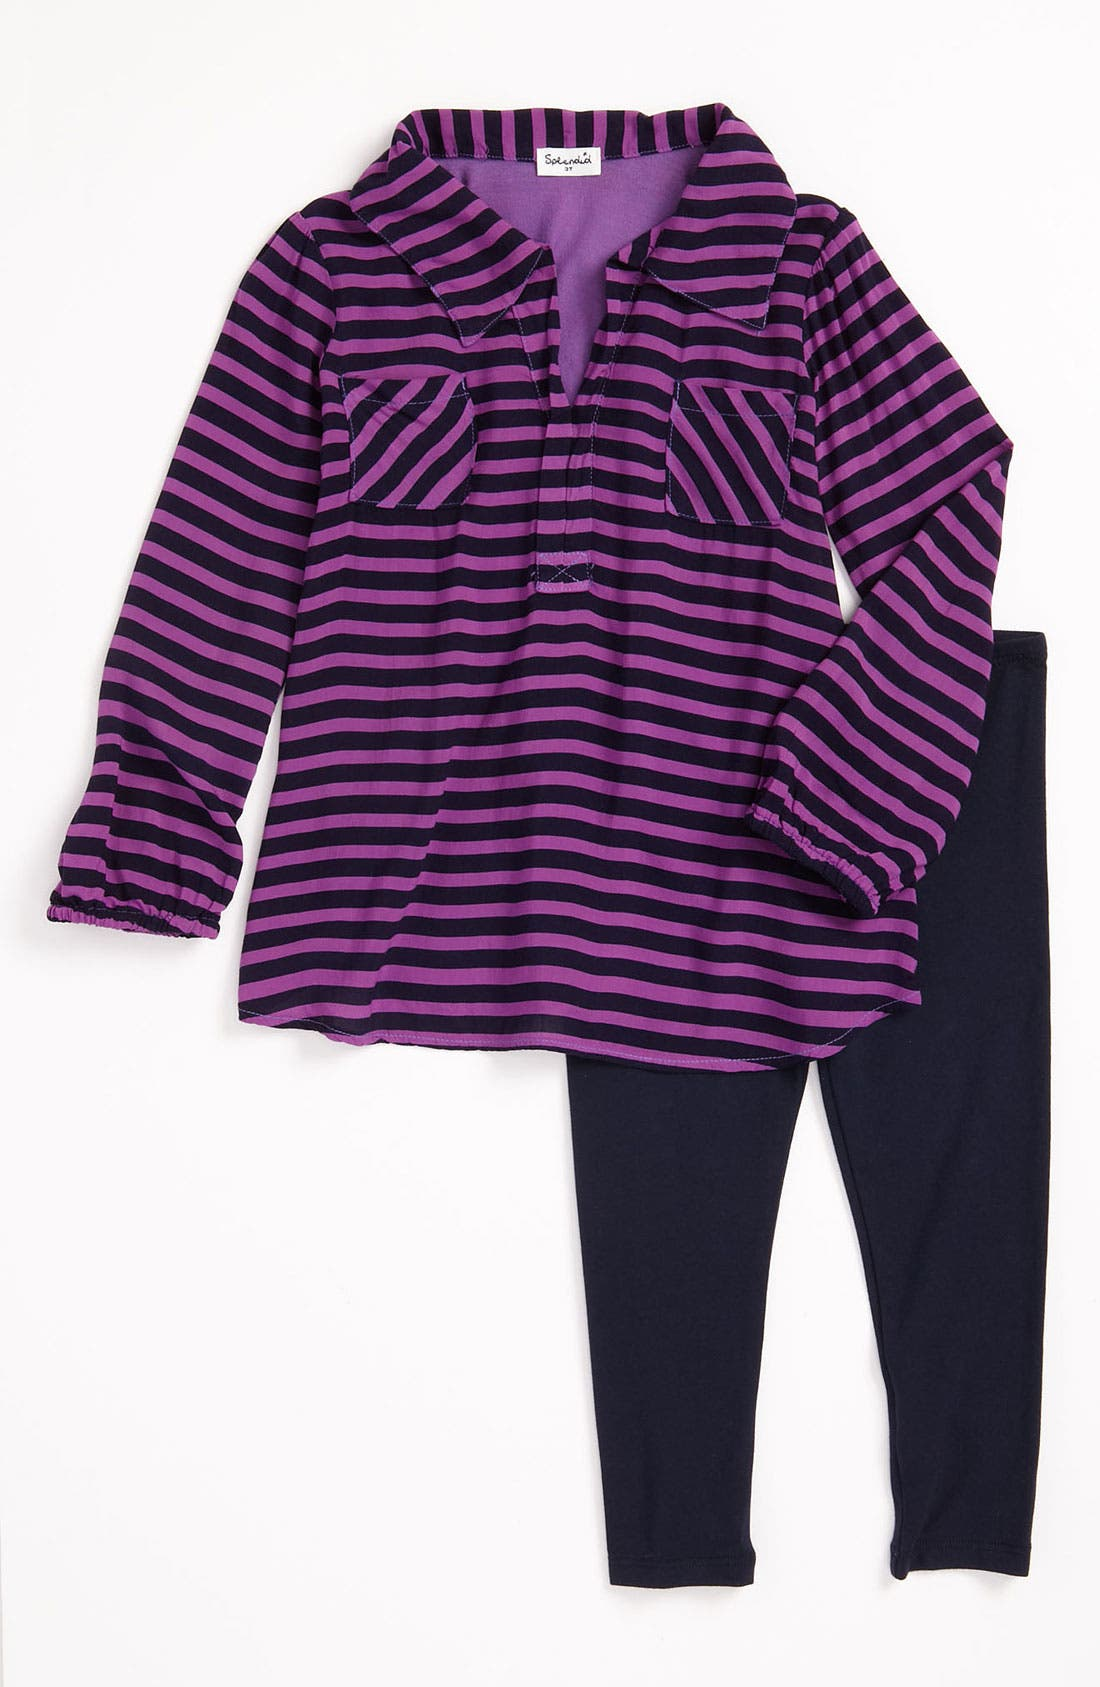 Main Image - Splendid 'Famous' Stripe Tunic & Leggings (Little Girls)